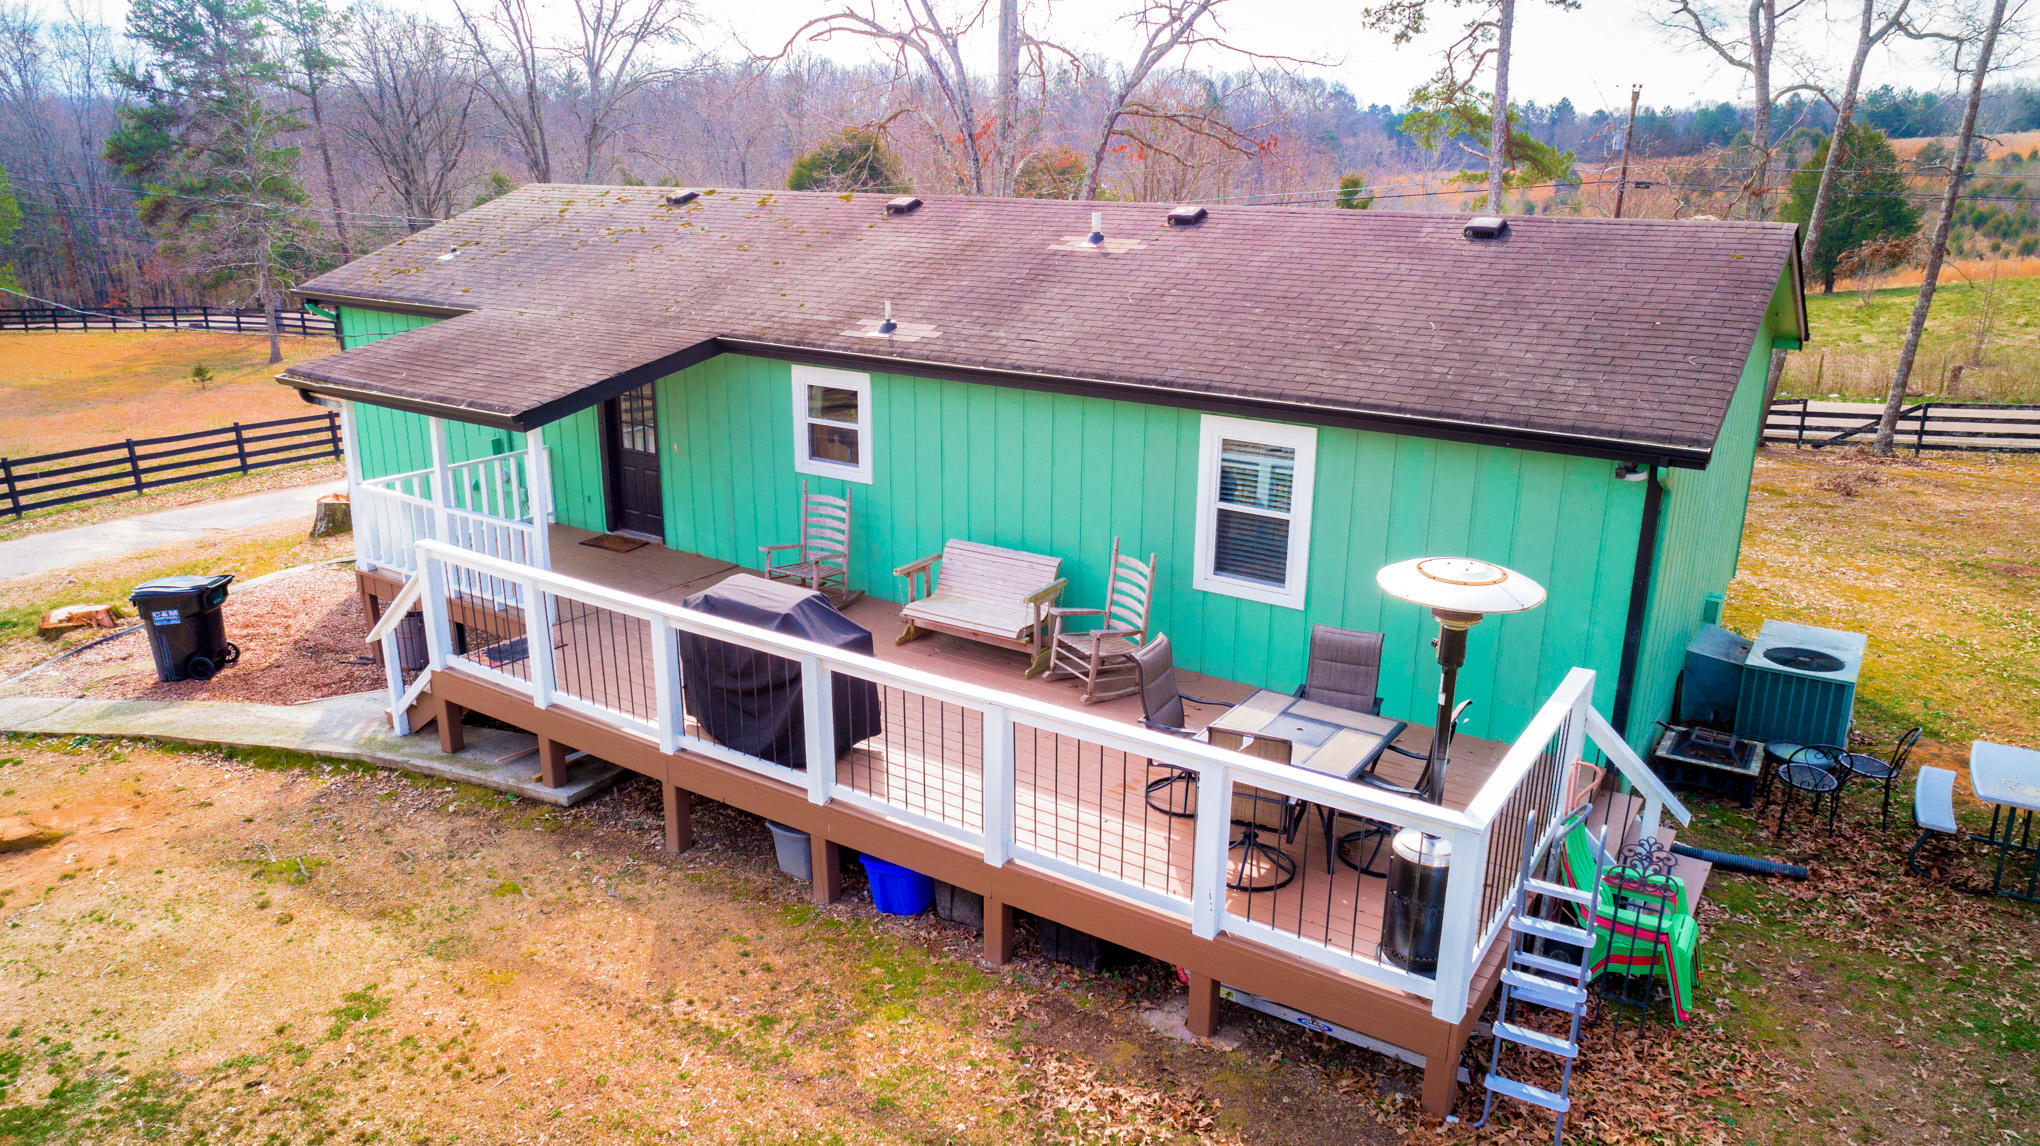 6923 Cooley Rd, Ooltewah, TN 37363